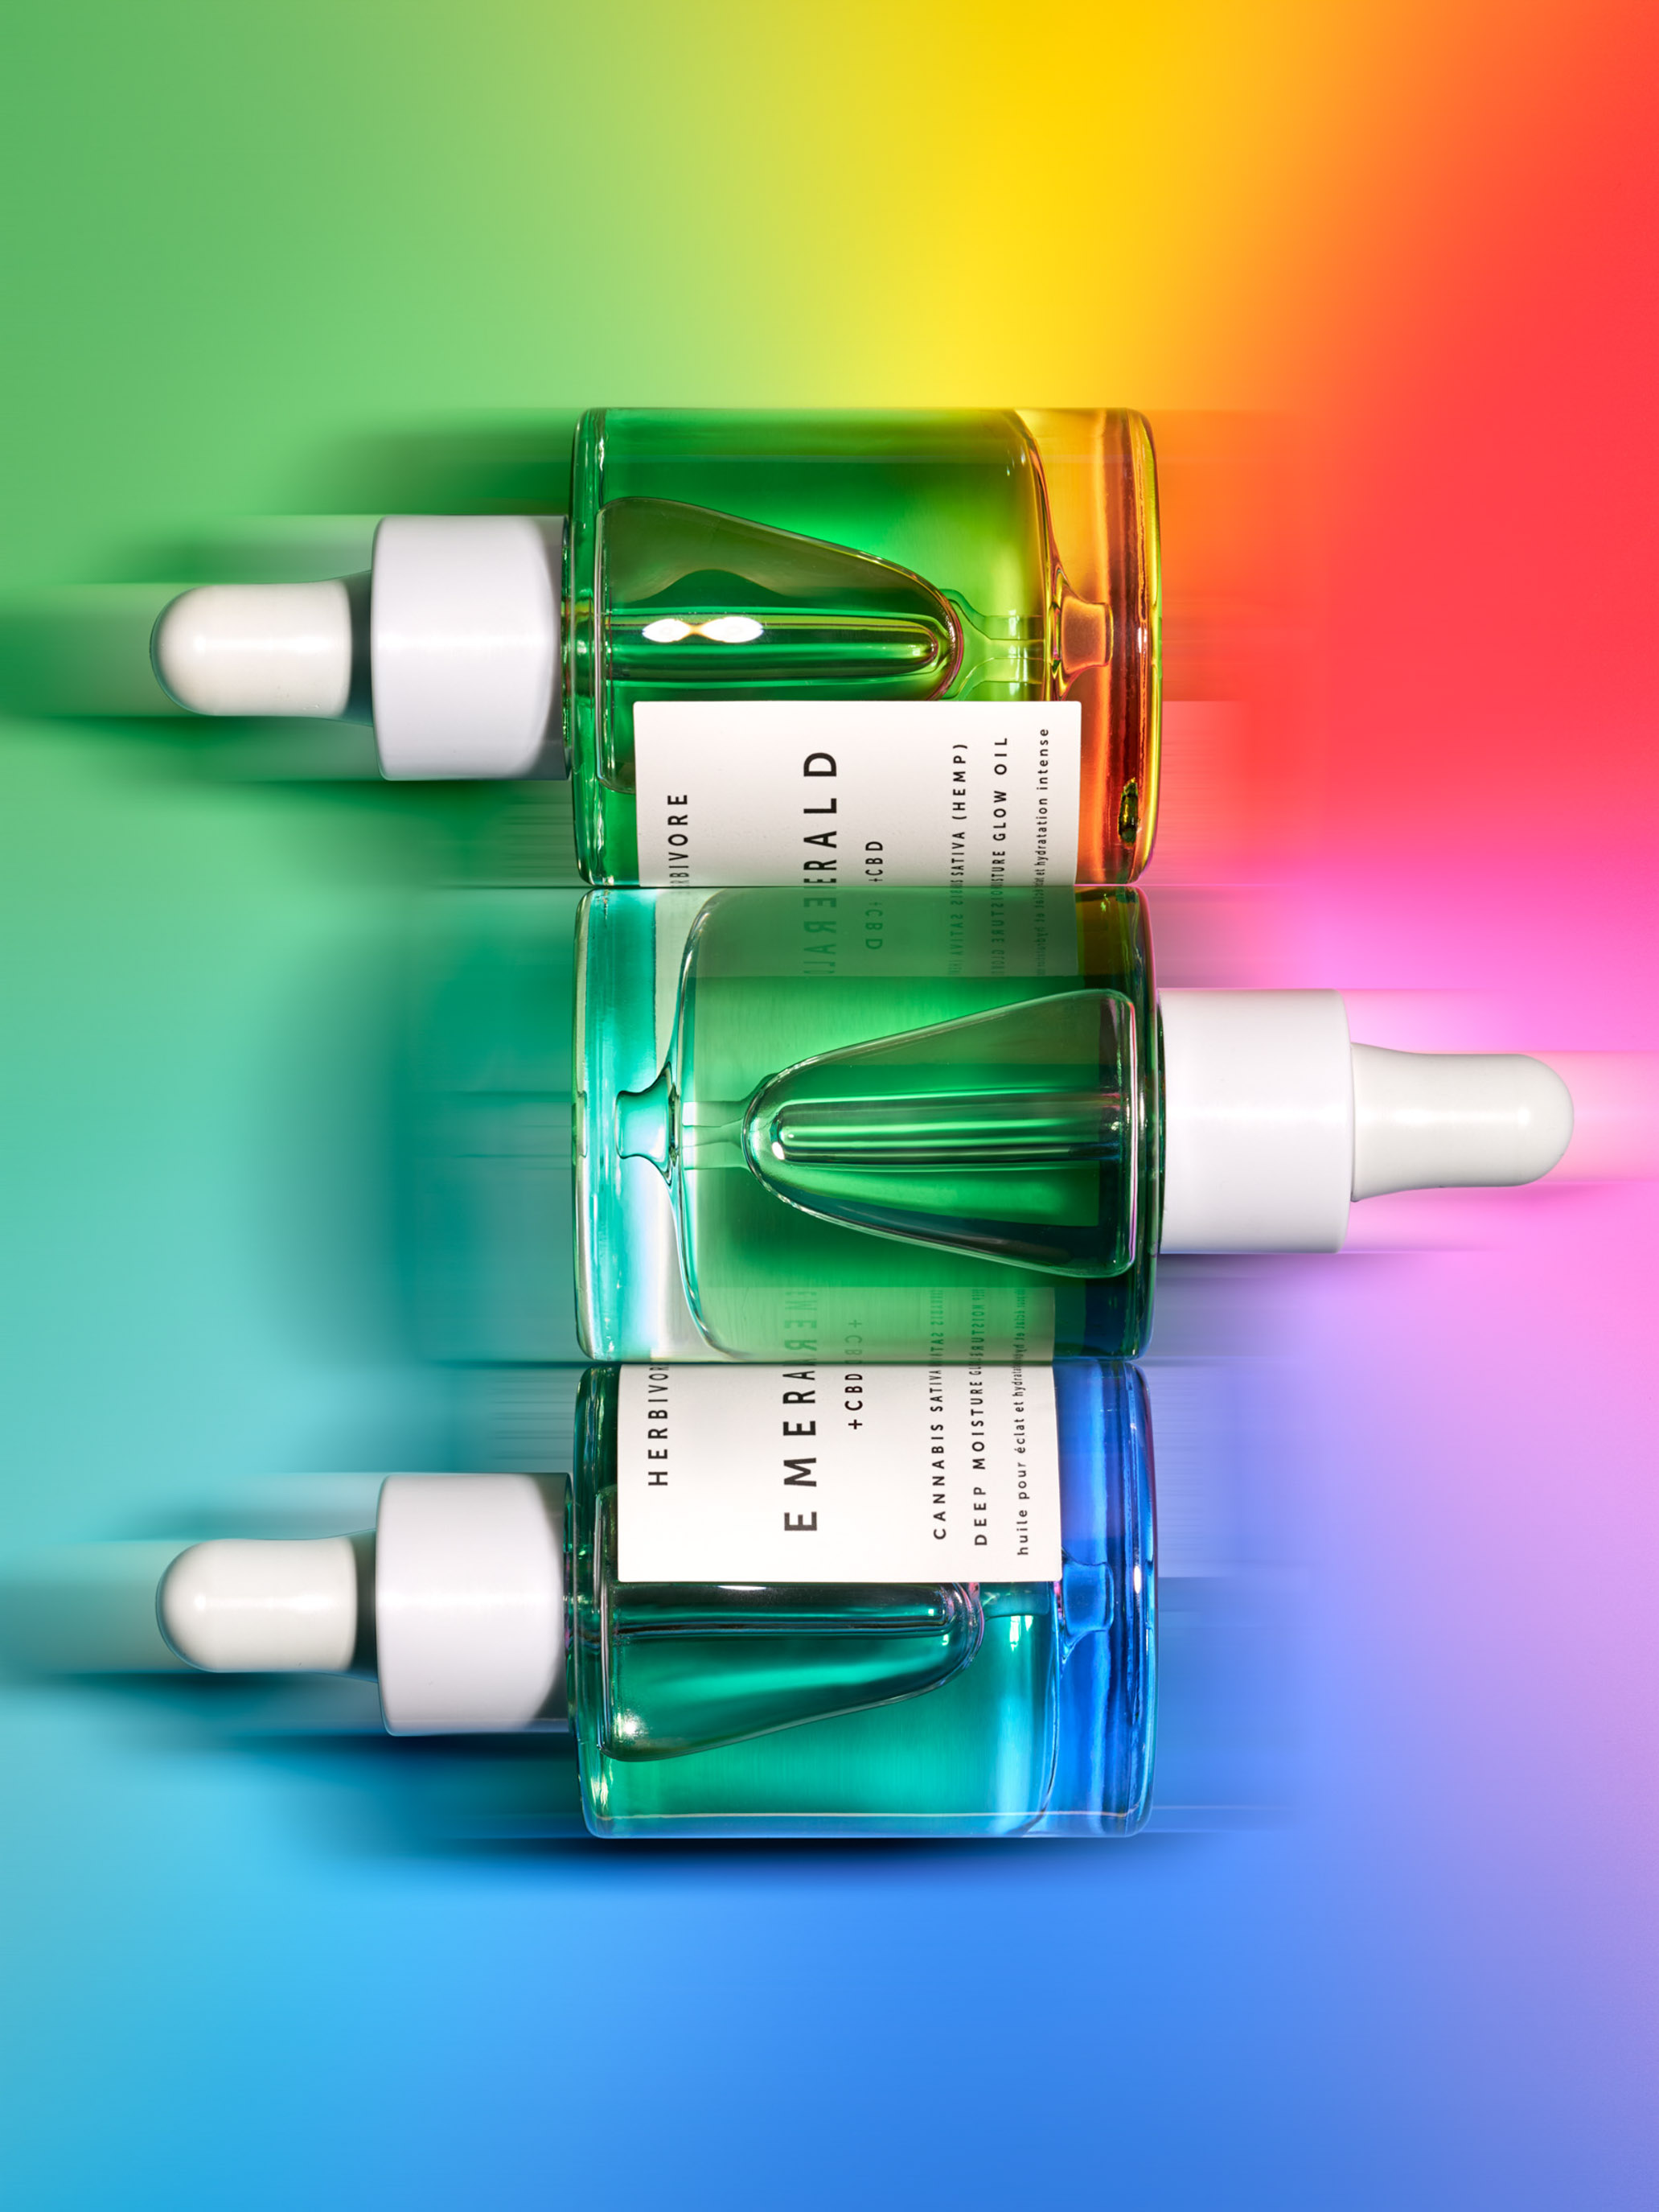 STAN Herbivore Emerald CBD Editorial Still Life on Rainbow Colors